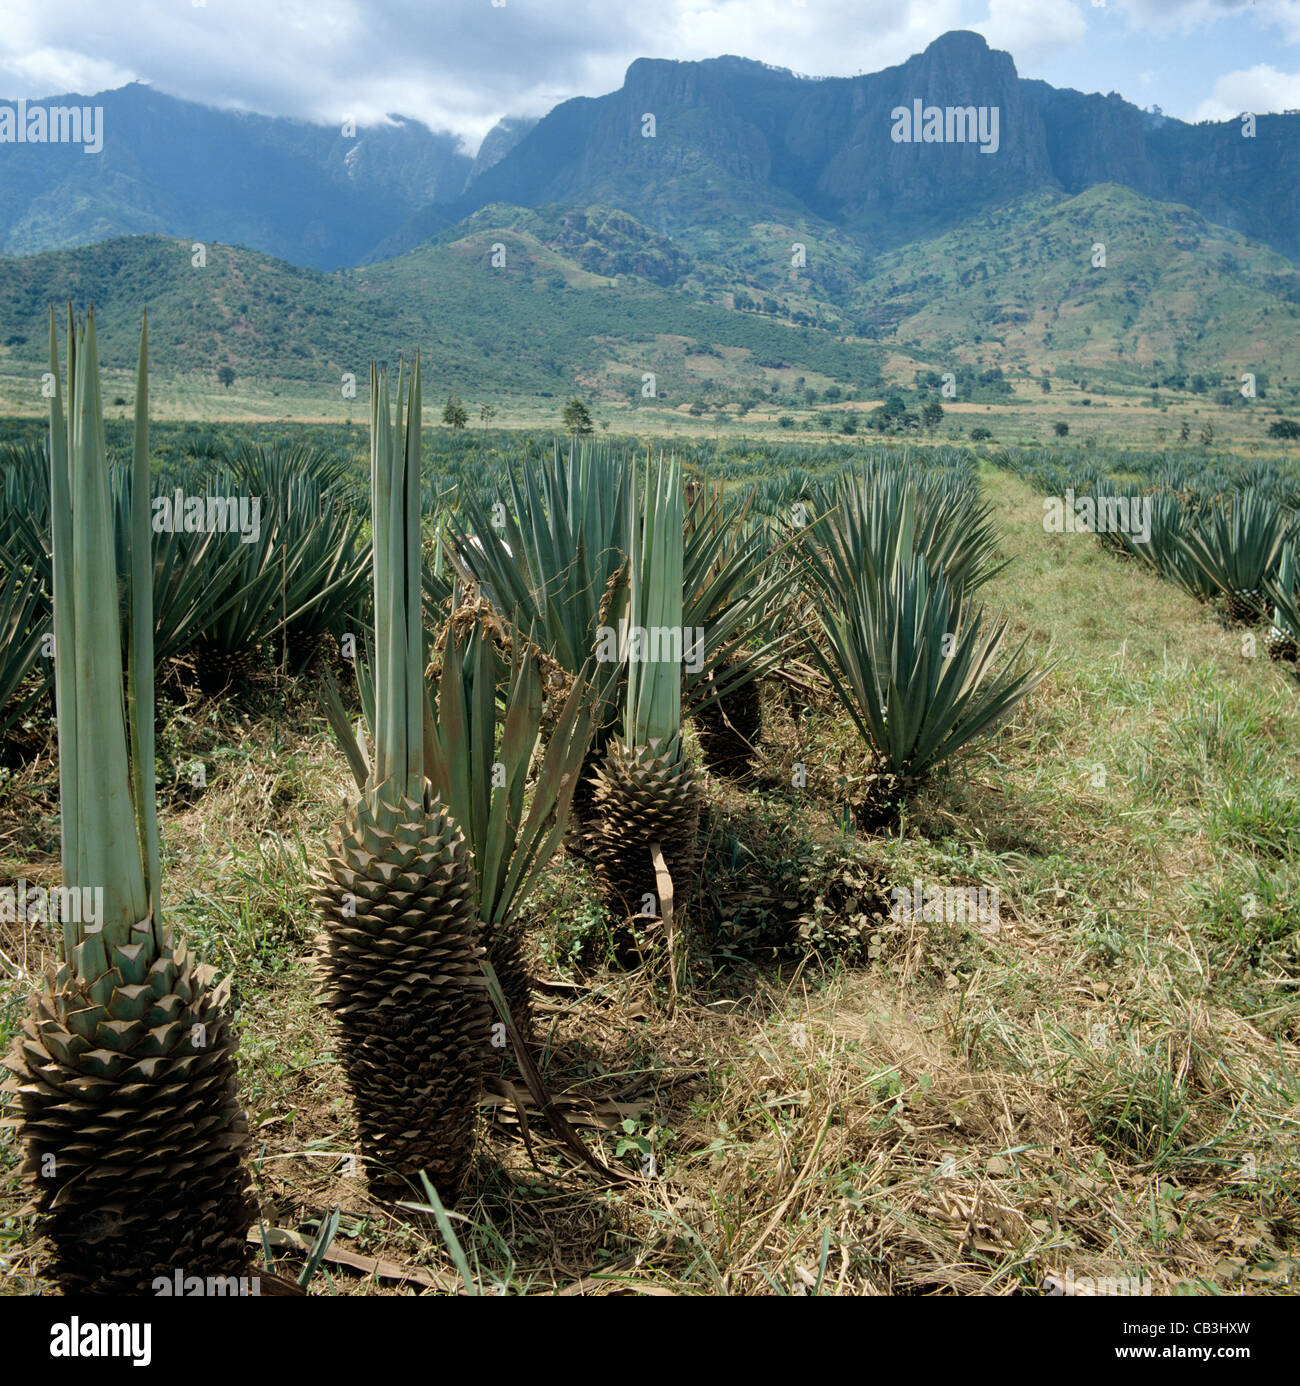 A sisal plantatioin where some leaves have already been harvested, Tanzania, East Africa - Stock Image